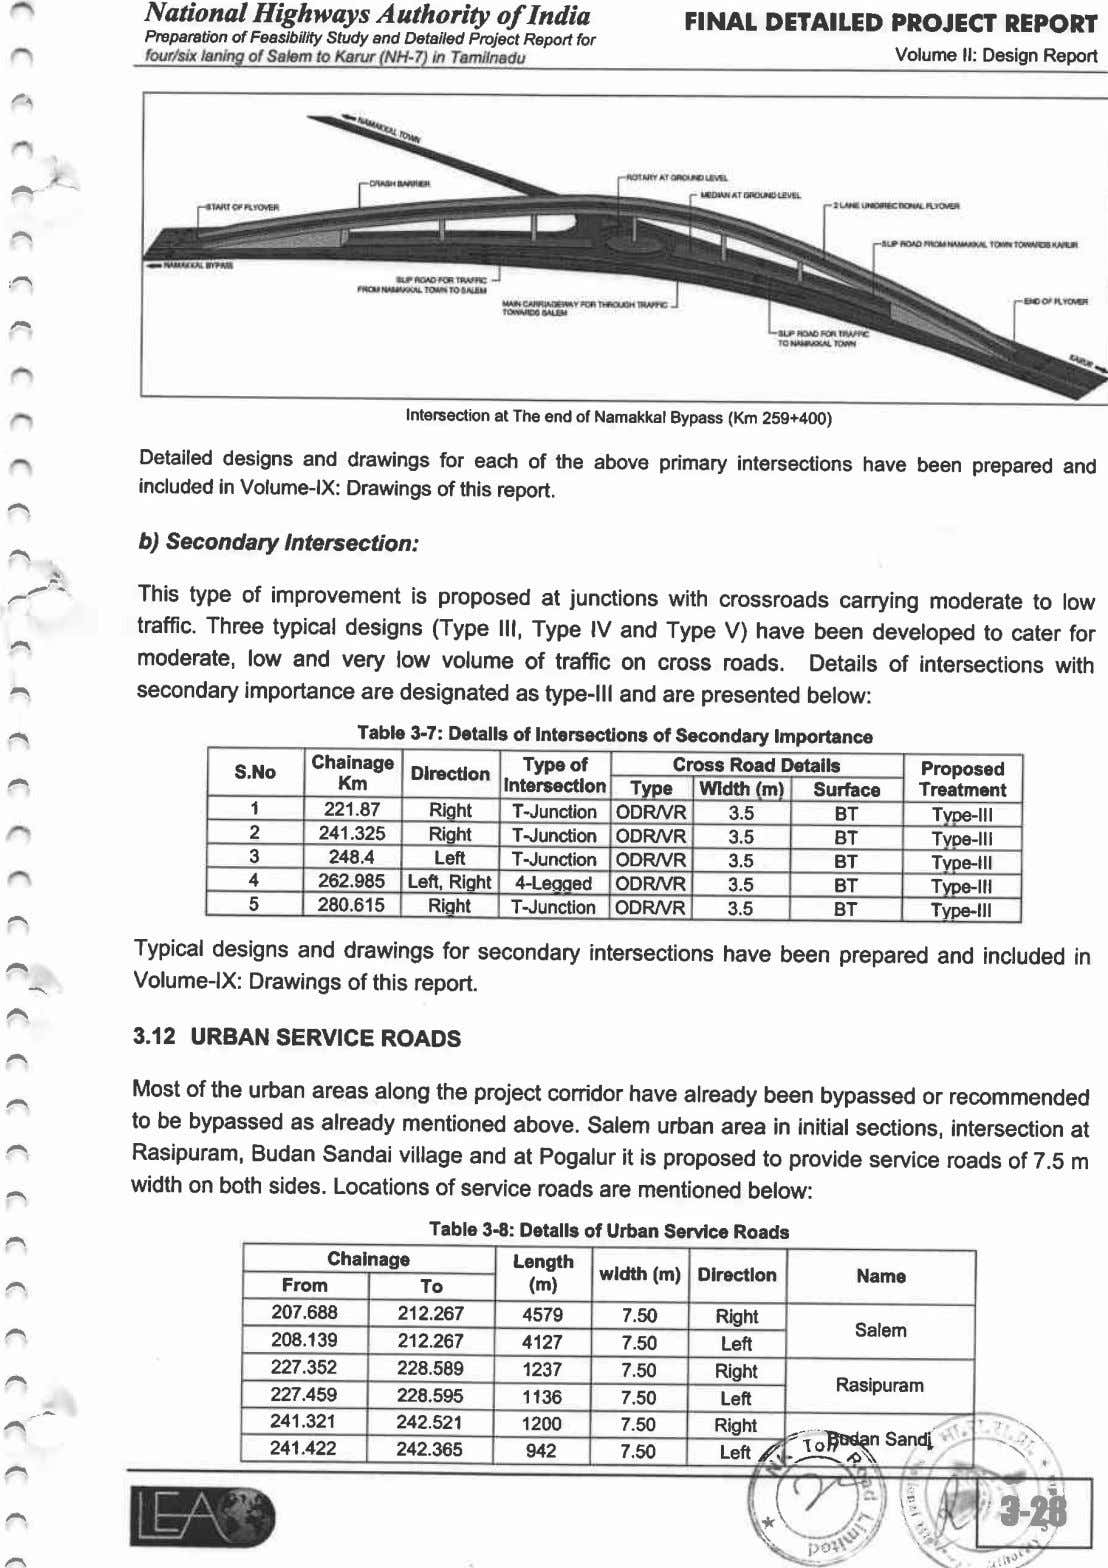 National Highways Authority of India FINAL DETAILED PROJECT REPORT PmpamtionofFeasibility Sfudyand Detailed Project